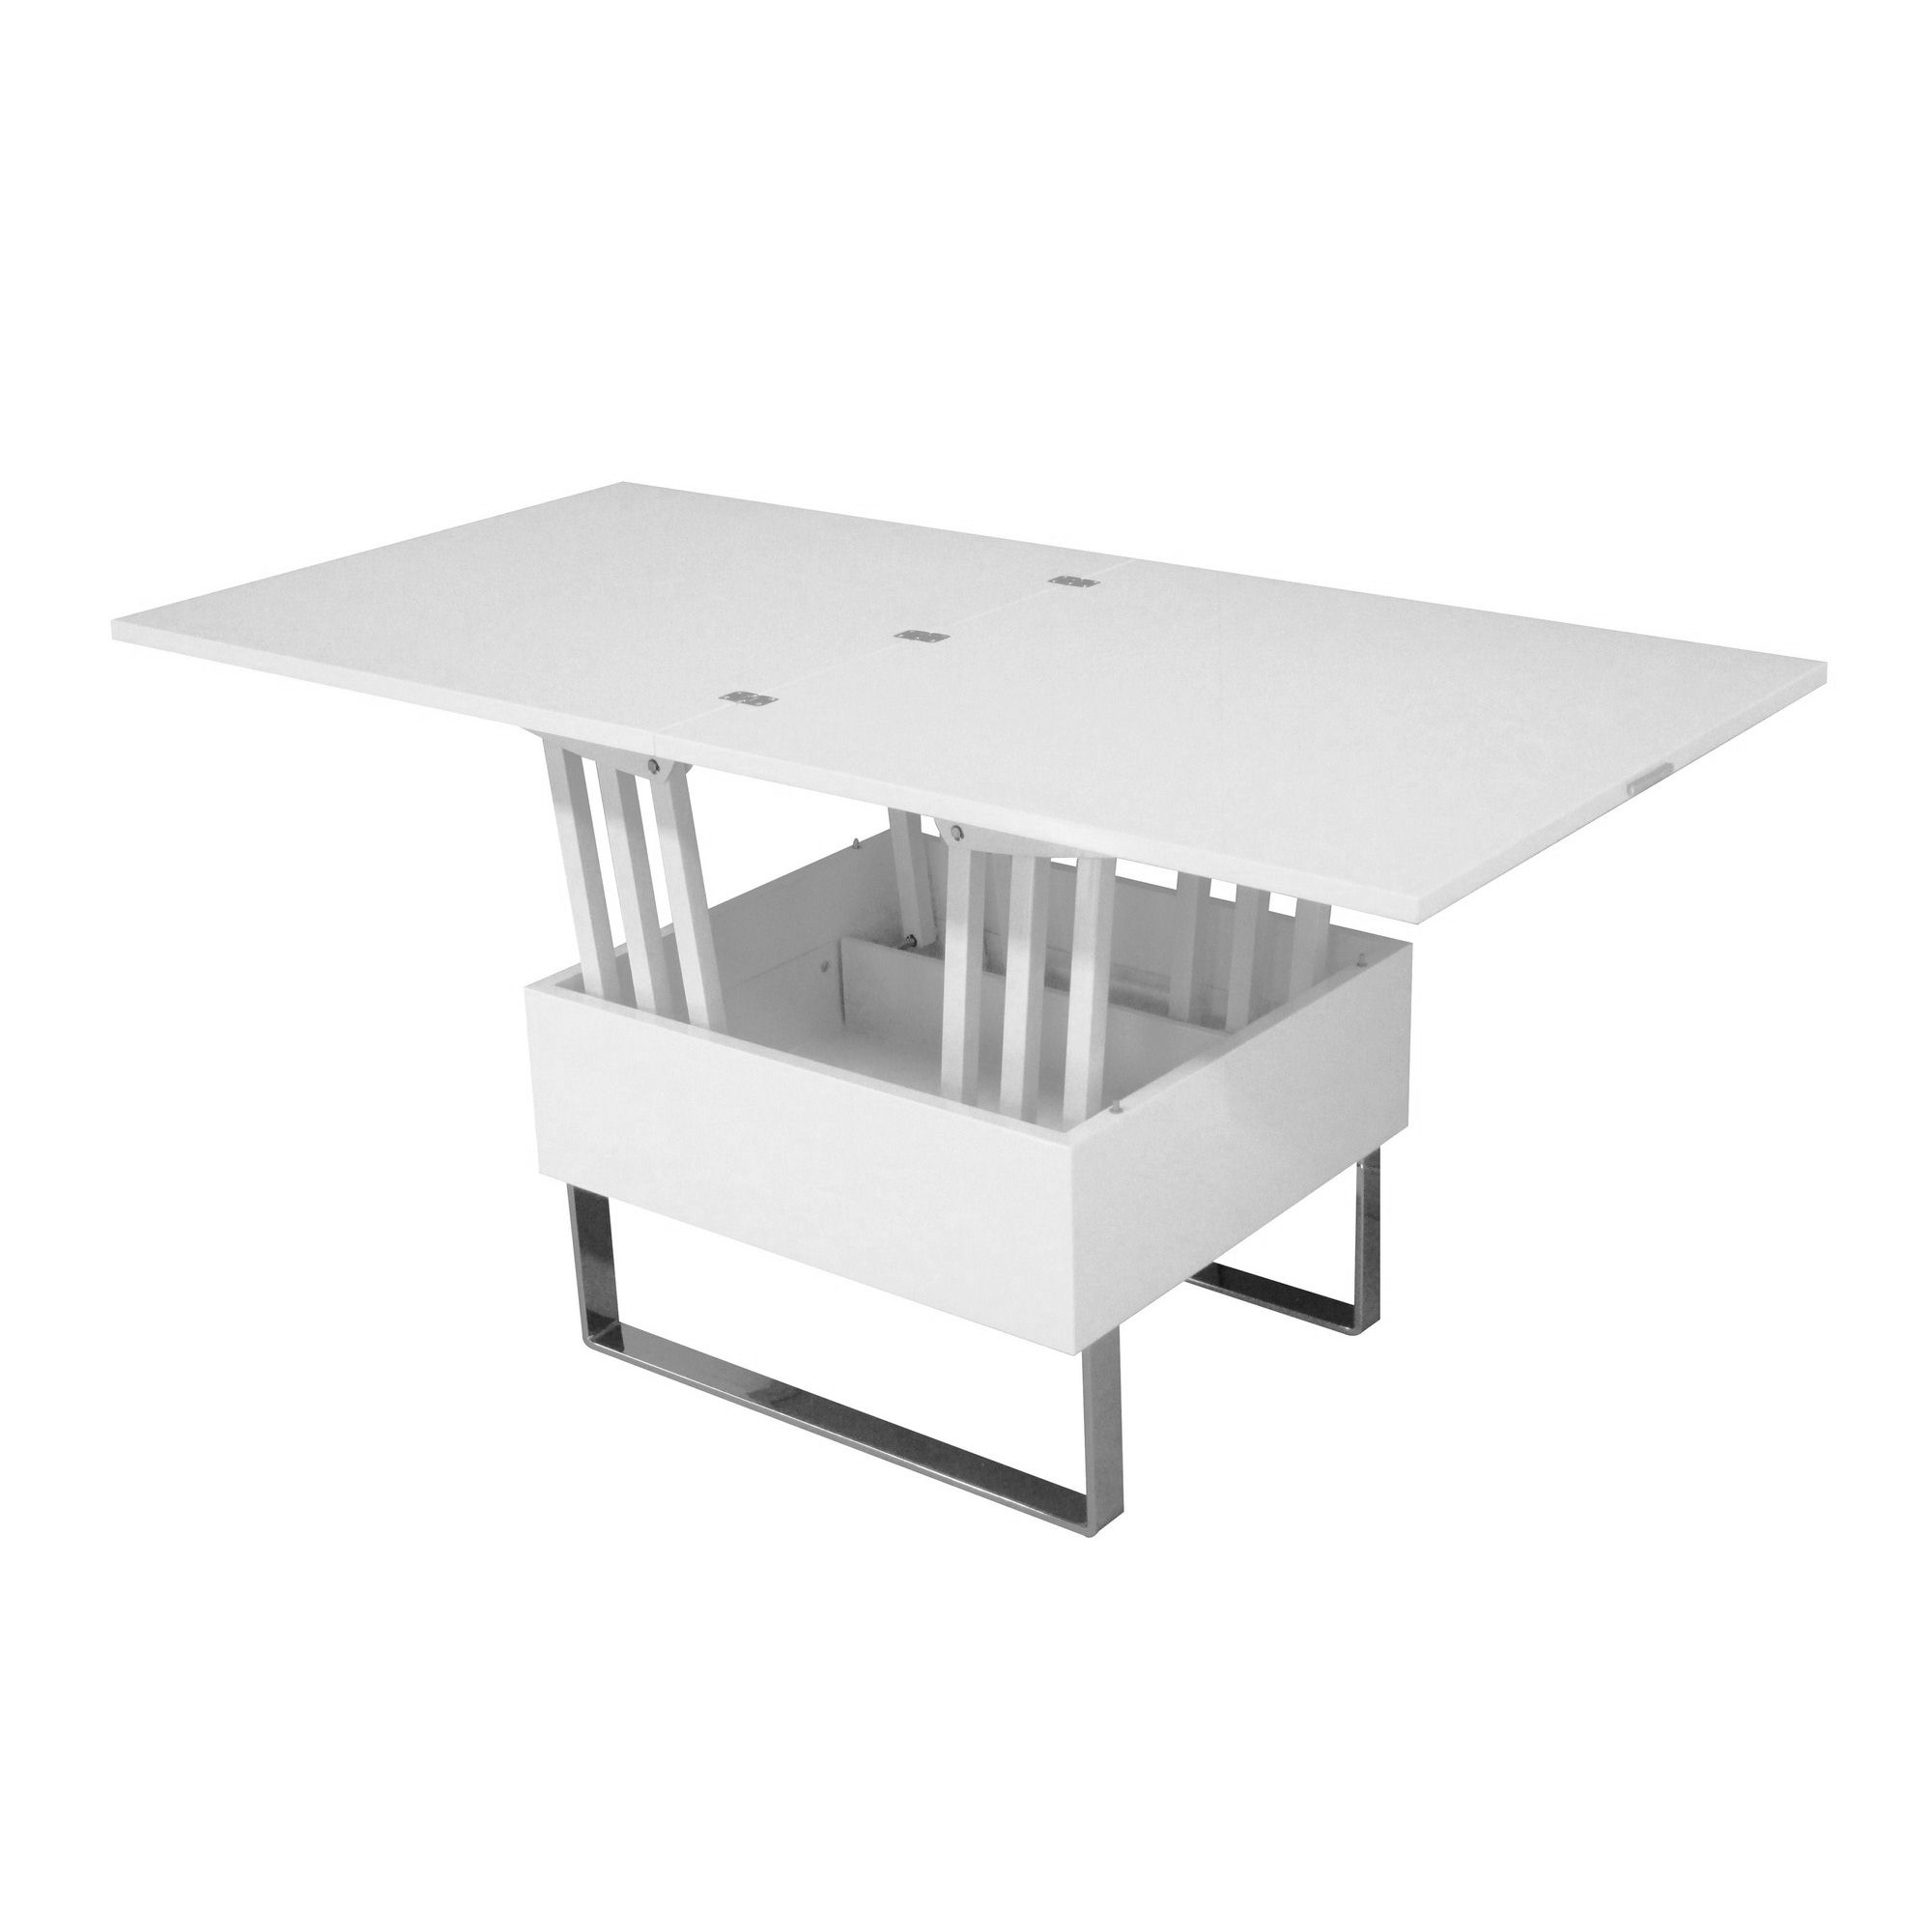 Table Basse Laquee Blanc Table Basse Relevable Multifonction Woods Laquée Blanc